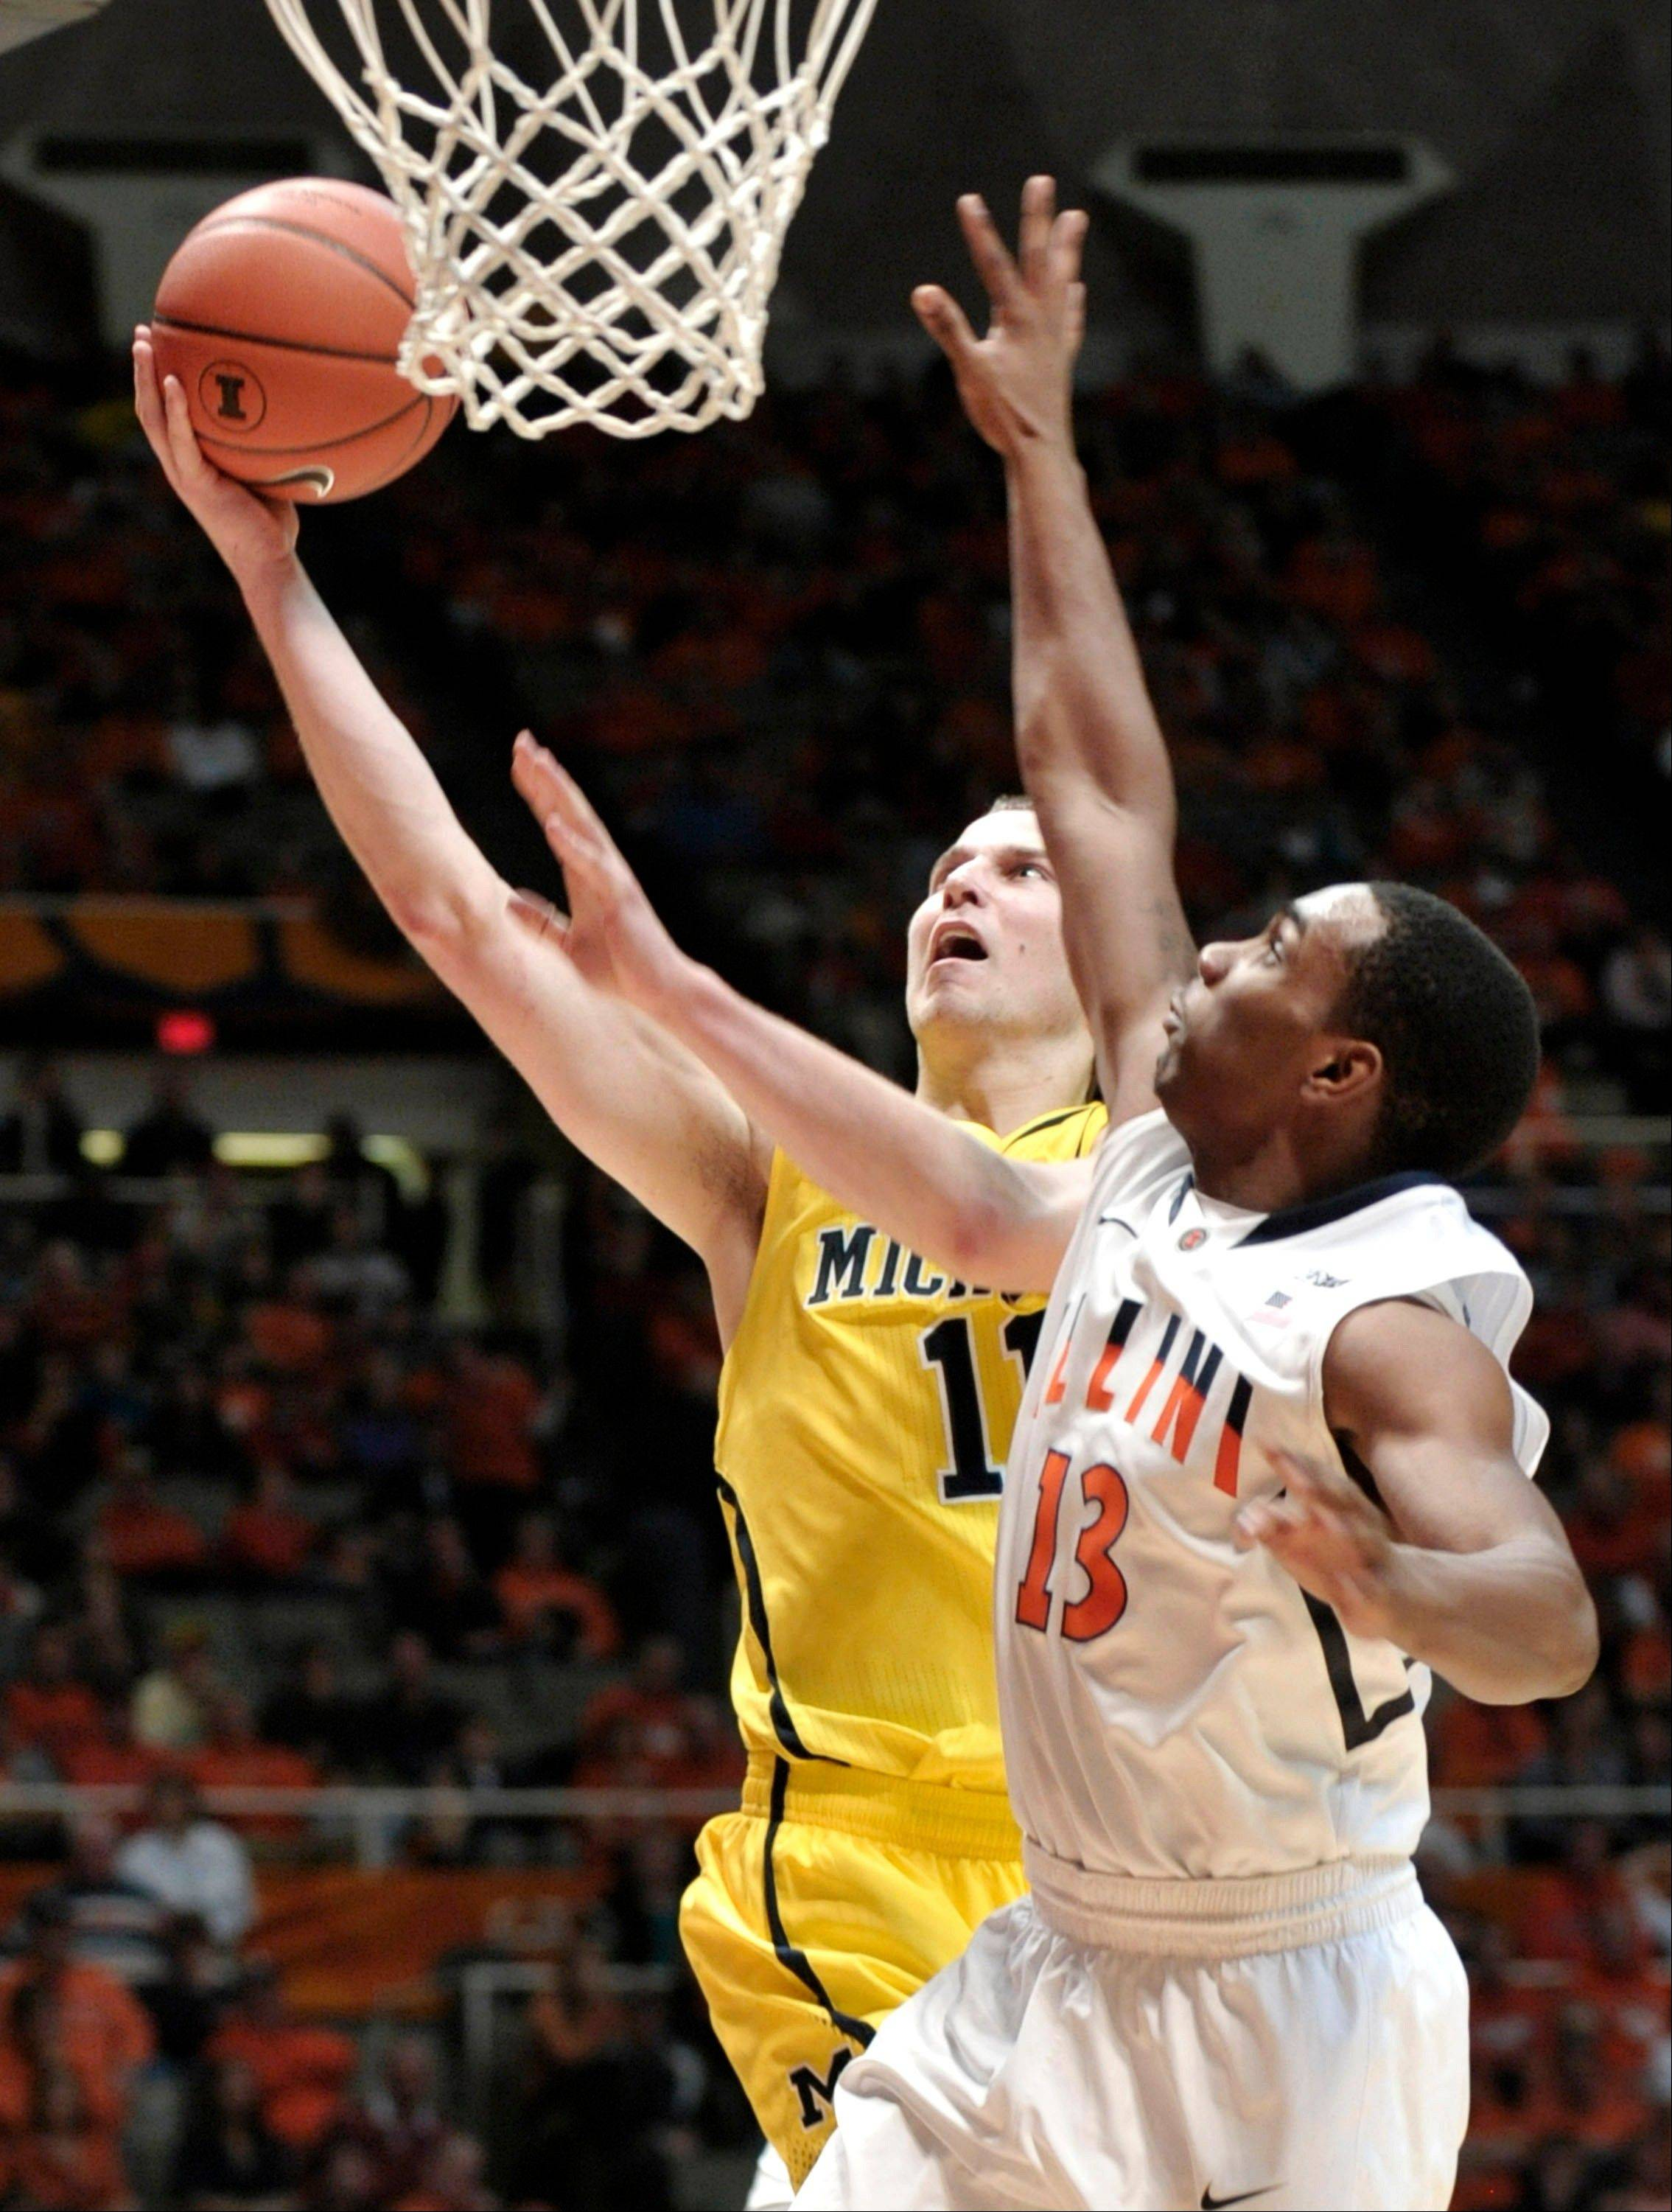 Michigan�s Nik Stauskas (11) drives to the basket against Illinois� Tracy Abrams (13) during the second half of their NCAA college basketball game, Sunday, Jan. 27, 2013, in Champaign, Ill. Michigan won 74-60.